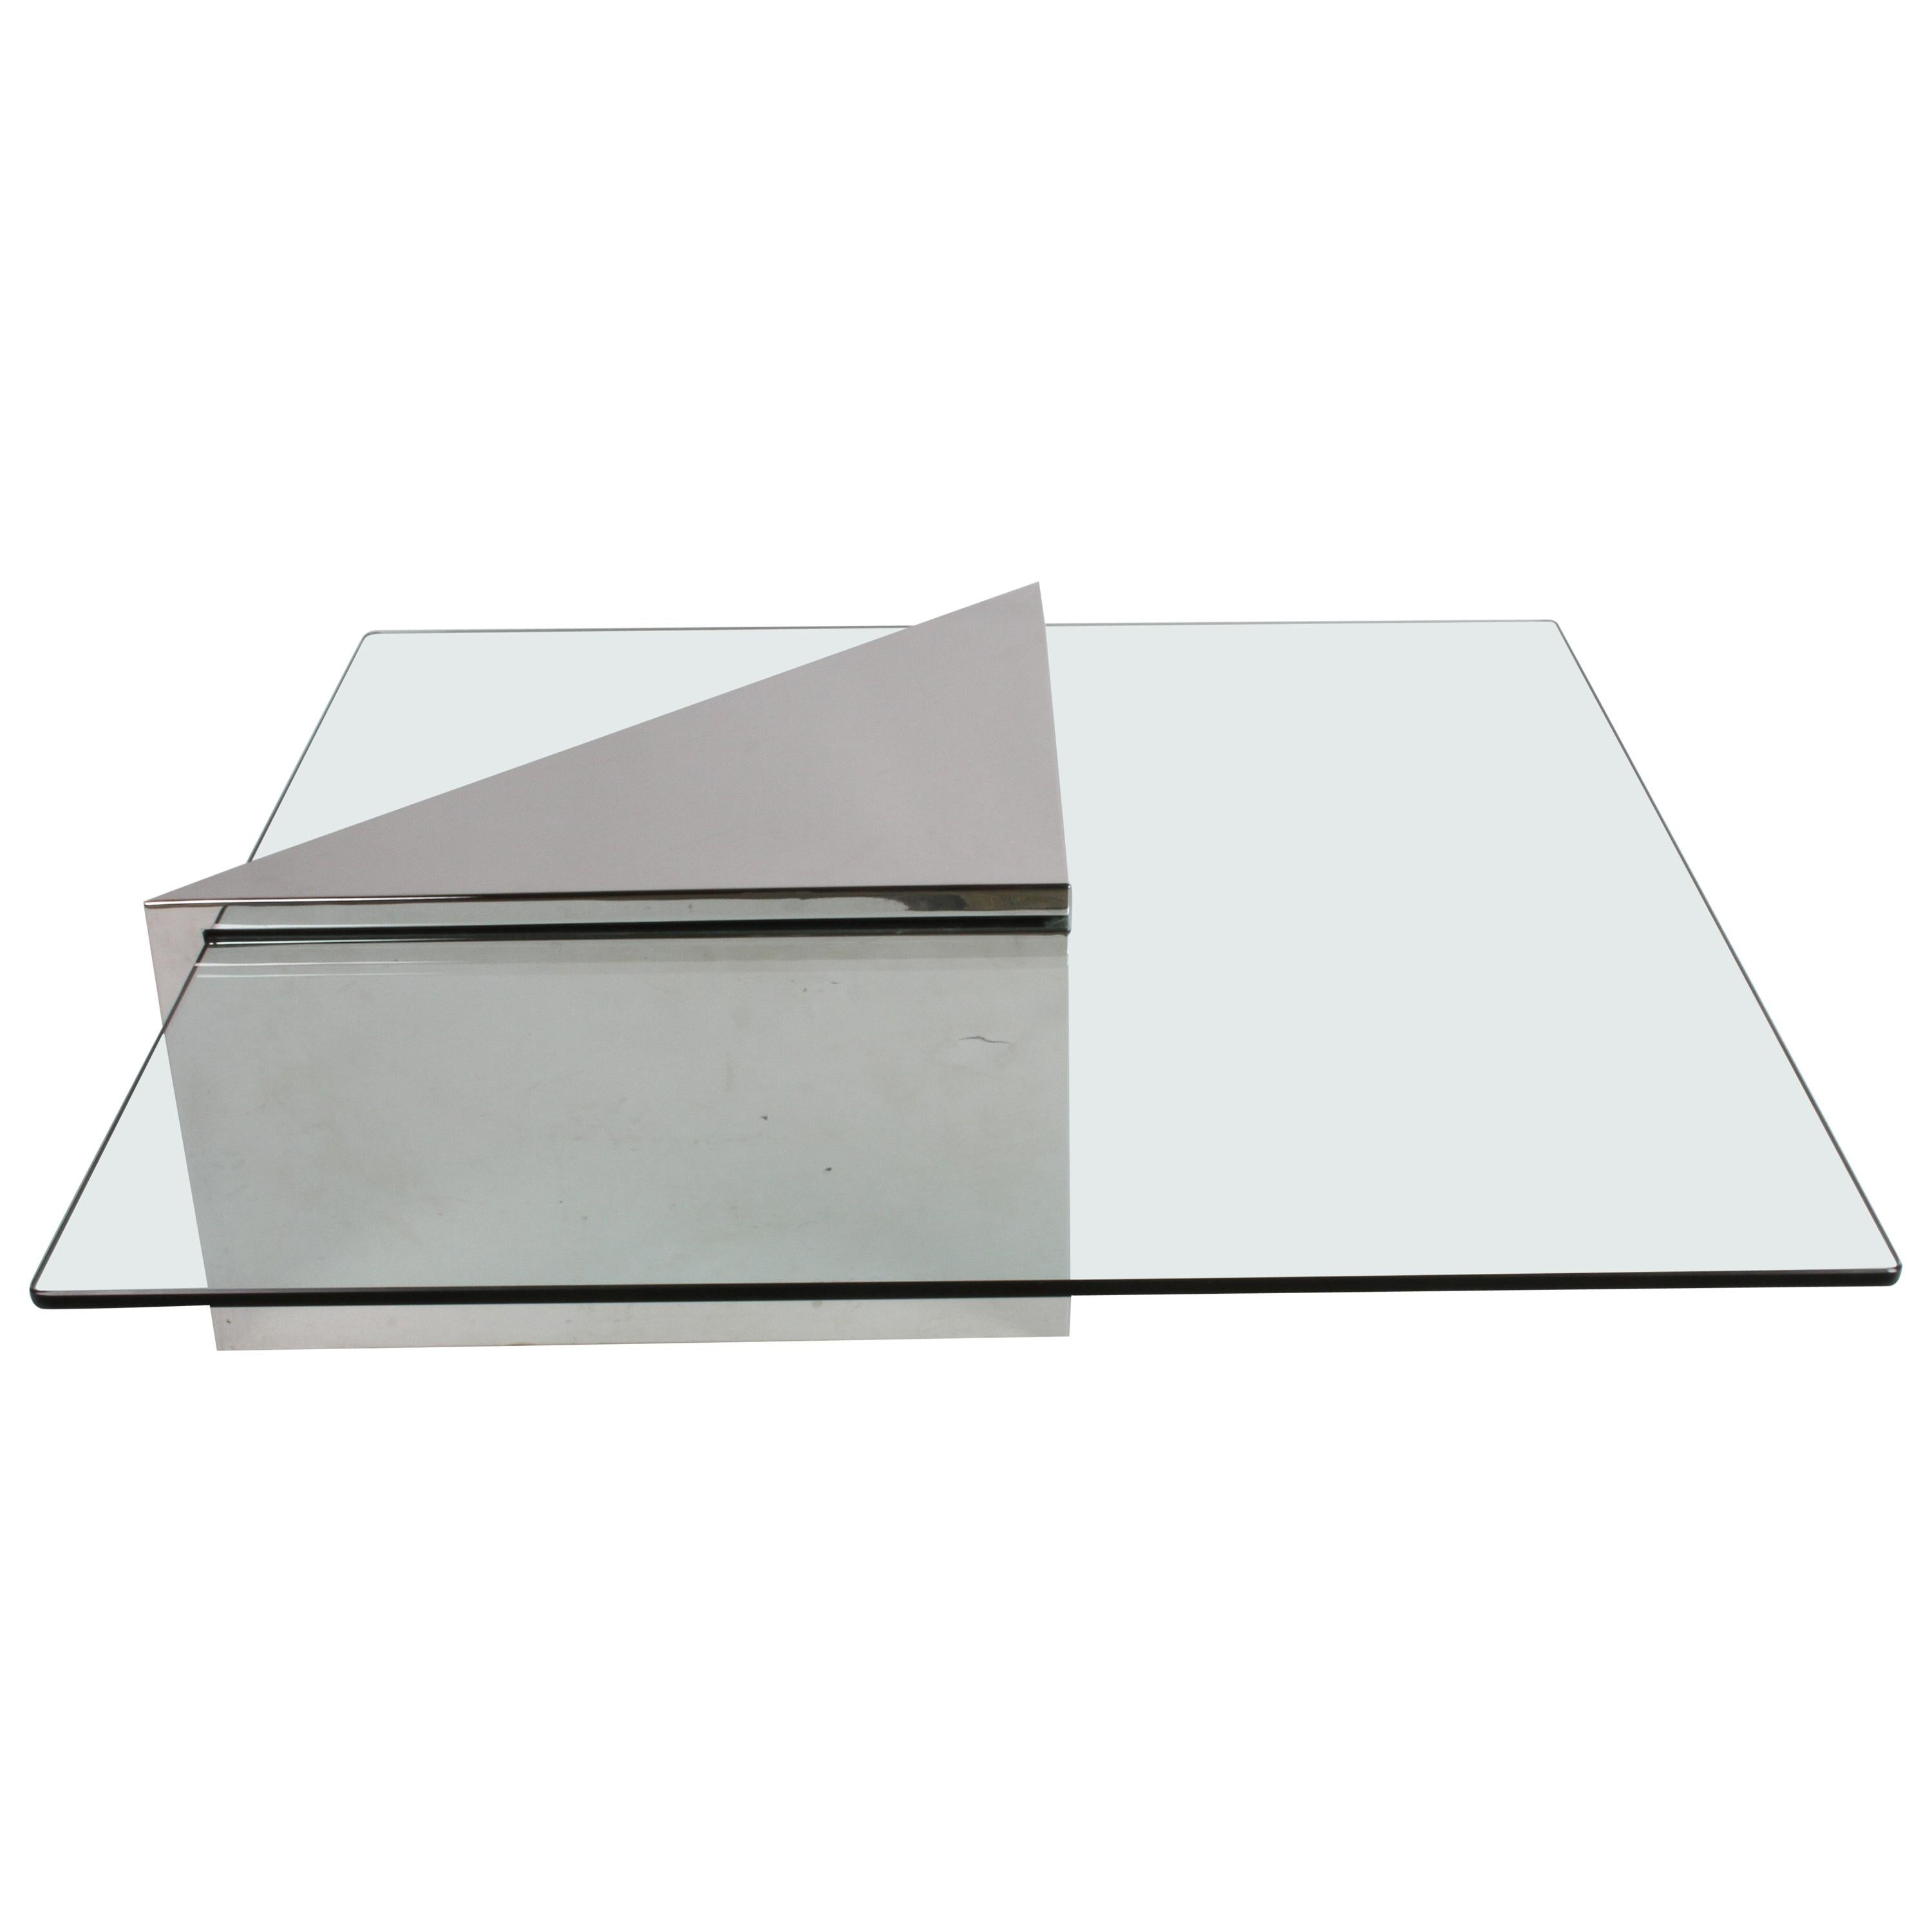 J. Wade Beam for Brueton, Monolithic Triangular Base and Glass Top Coffee Table